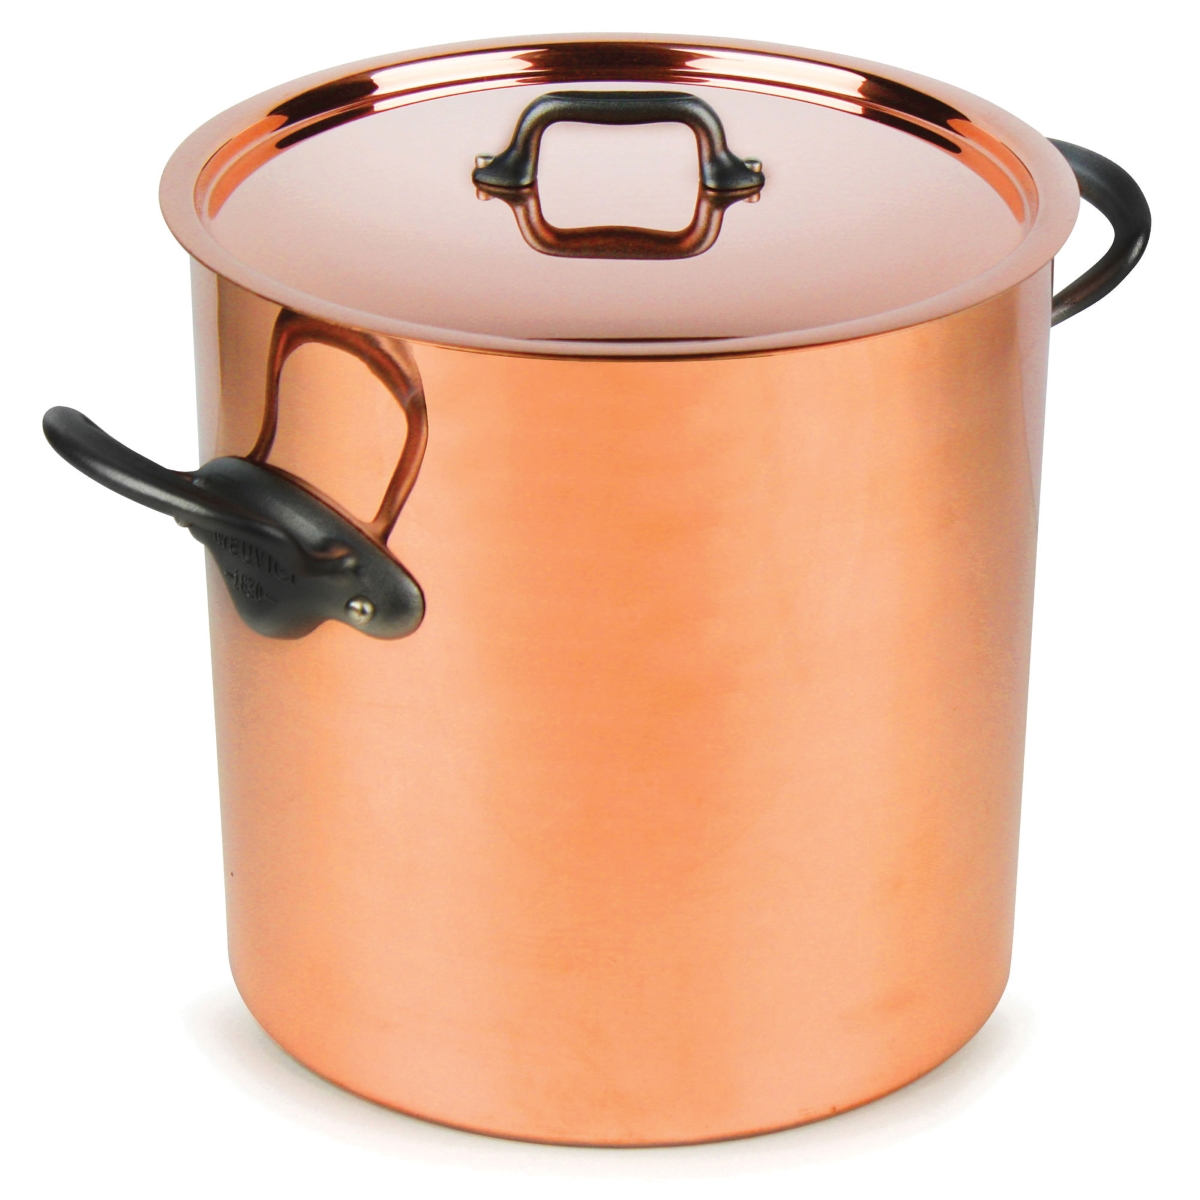 Mauviel M'heritage 150C2 11.7-quart Tin Lined Tall Copper Stockpot